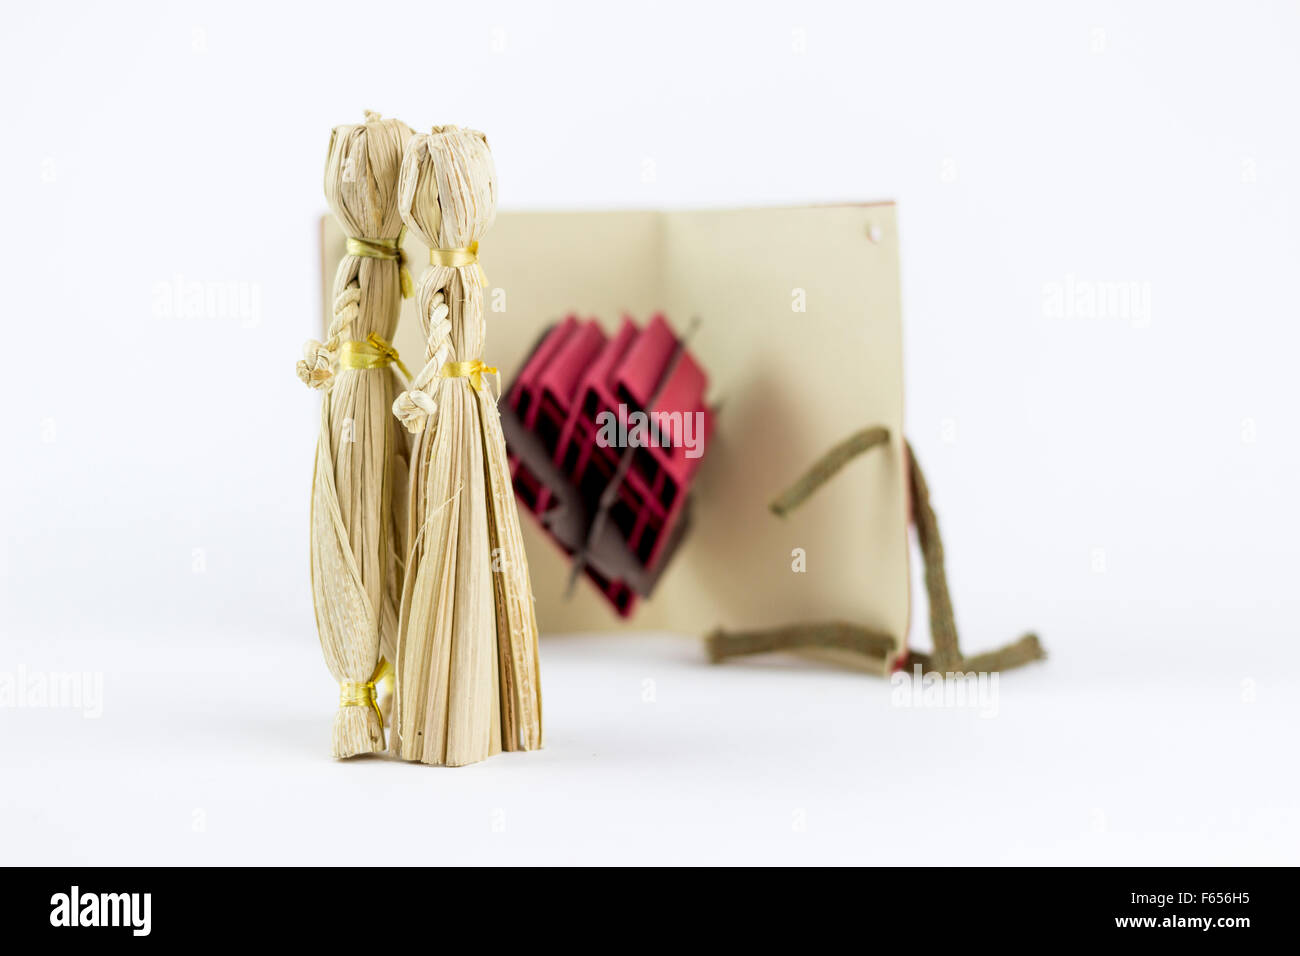 Two straw figurines, kissing in front of a love letter,  on a white background - Stock Image